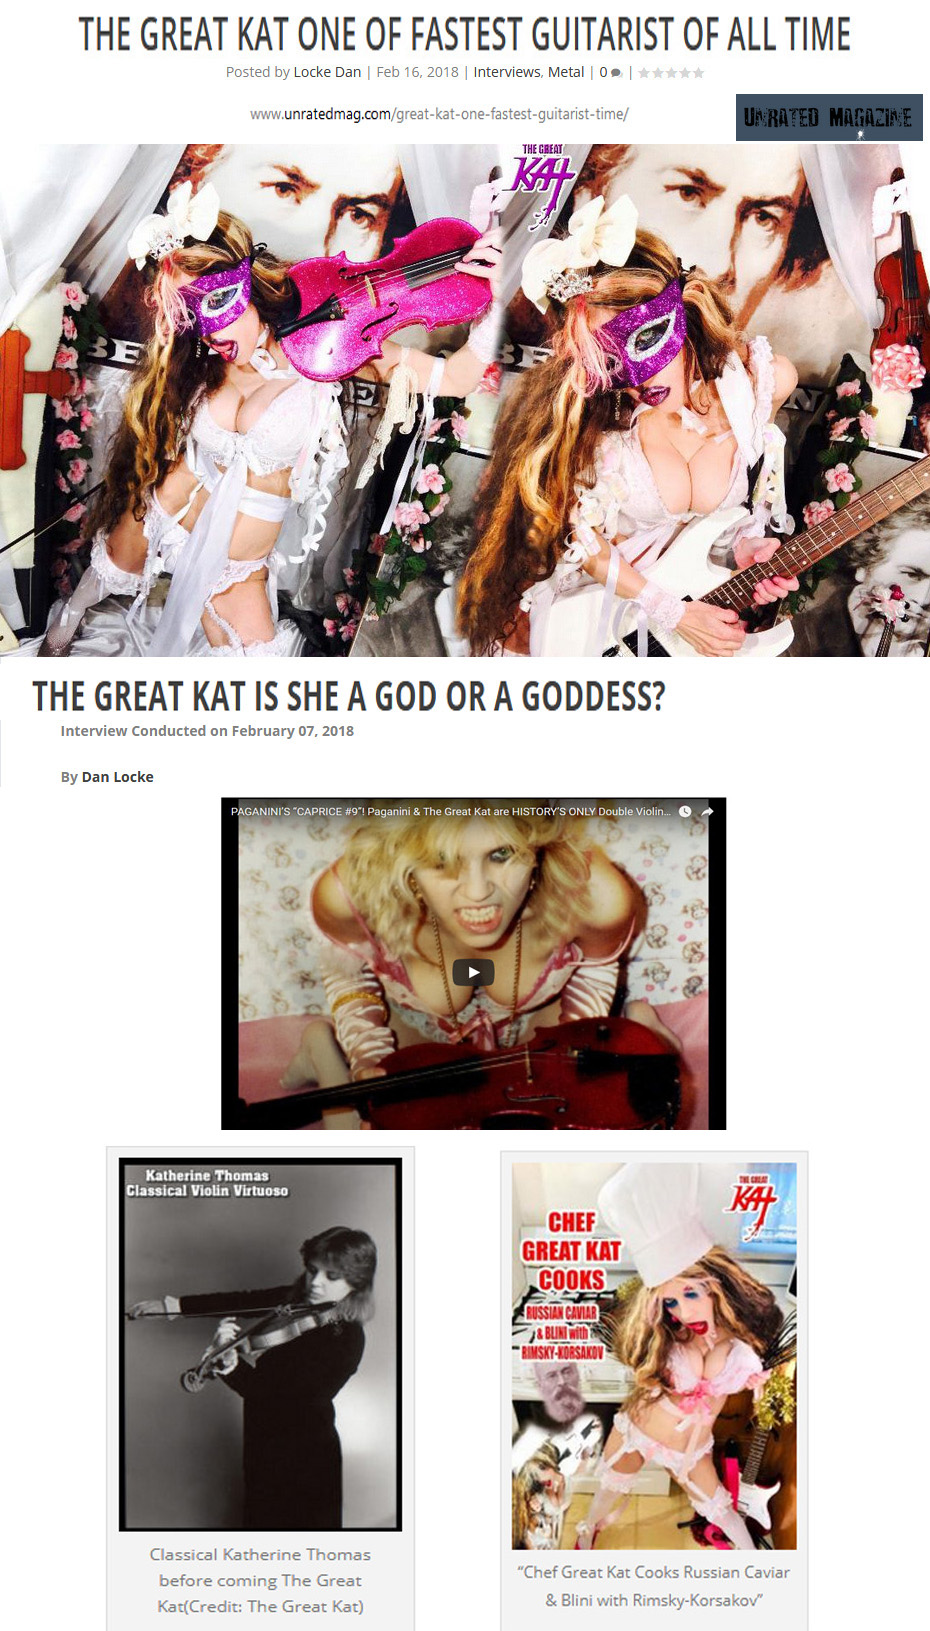 "UNRATED MAGAZINE'S INTERVIEW with THE GREAT KAT: ""THE GREAT KAT ONE OF THE FASTEST GUITARIST OF ALL TIME. THE GREAT KAT IS SHE A GOD OR A GODDESS?"" by Dan Locke http://www.unratedmag.com/great-kat-one-fastest-guitarist-time/ ""The Great Kat is she a God or a Goddess? Interview Conducted on February 07, 2018 By Dan Locke. She's a busty blond with a guitar. She doesn't play, but incinerates, classical music. She's outrageous, dangerous, and ferocious — she's The Great Kat"" - Melanie ""Sass"" Falina, Unrated Magazine"